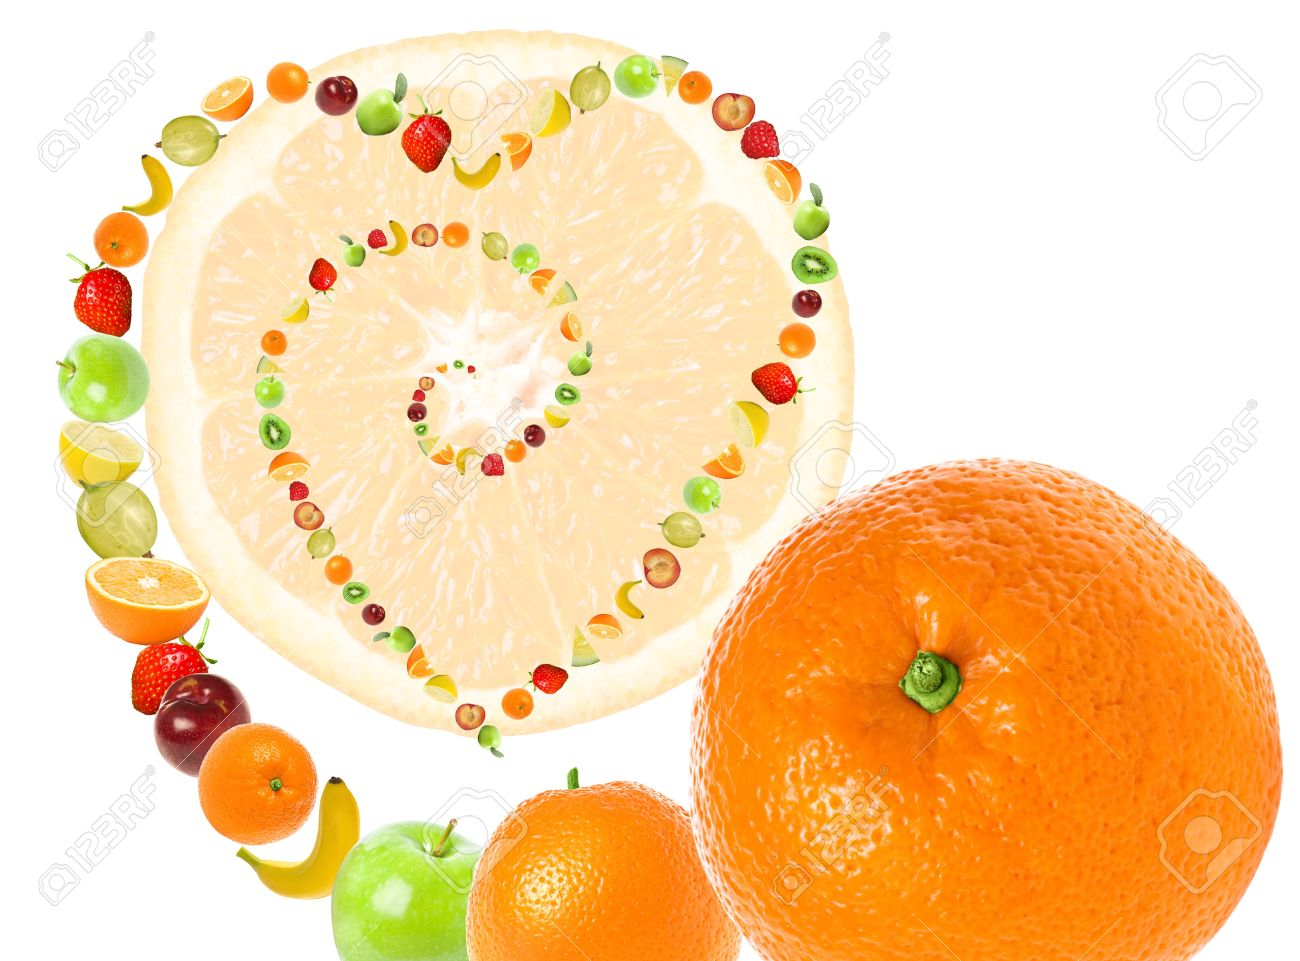 Fruit Abstract Imaging Love To Fruits And Healthy Diet. Line.